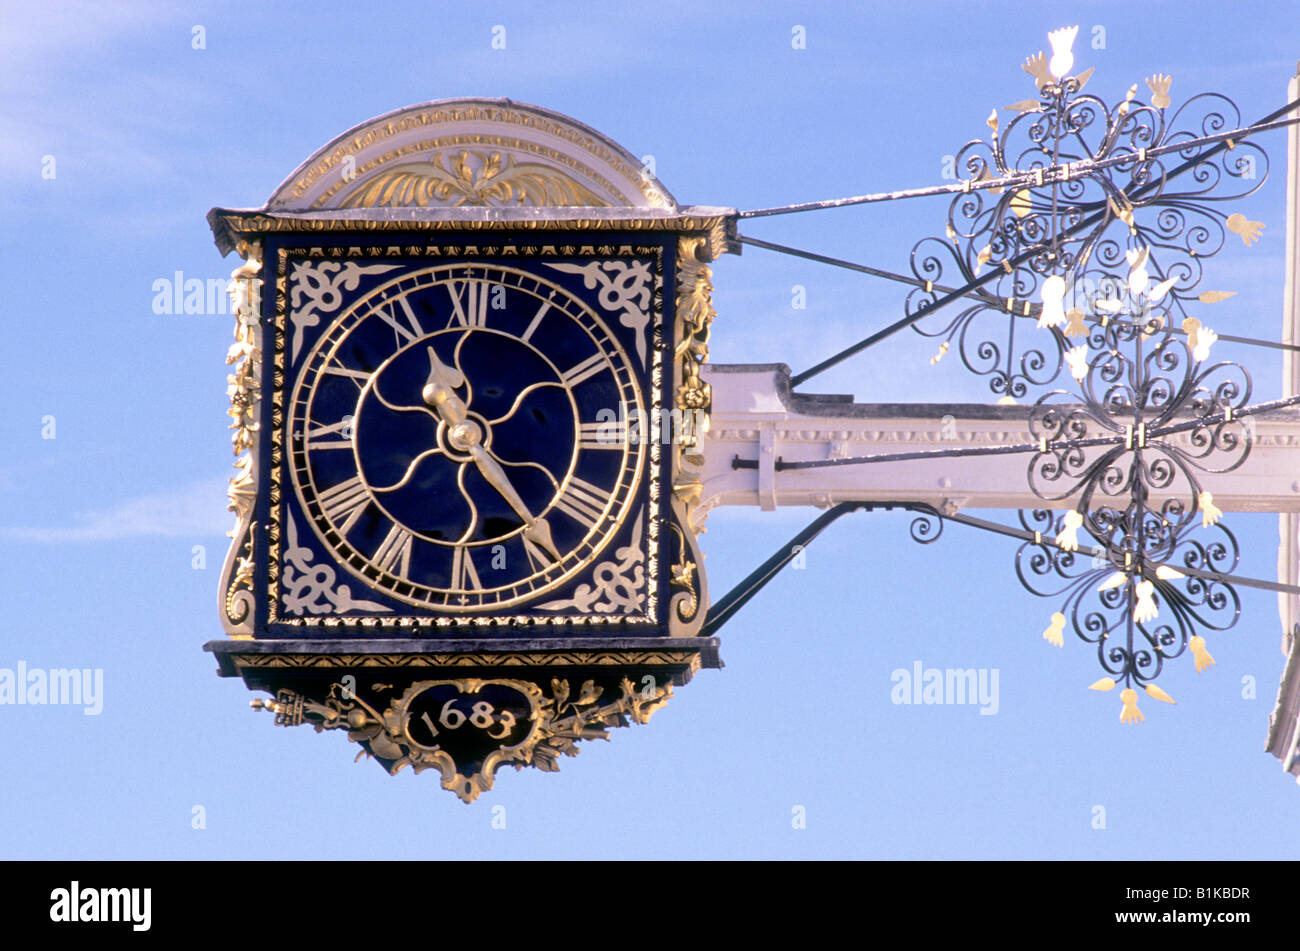 Guildford Town Hall Clock dated 1683 gilded public overhanging street bracket Surrey England UK - Stock Image